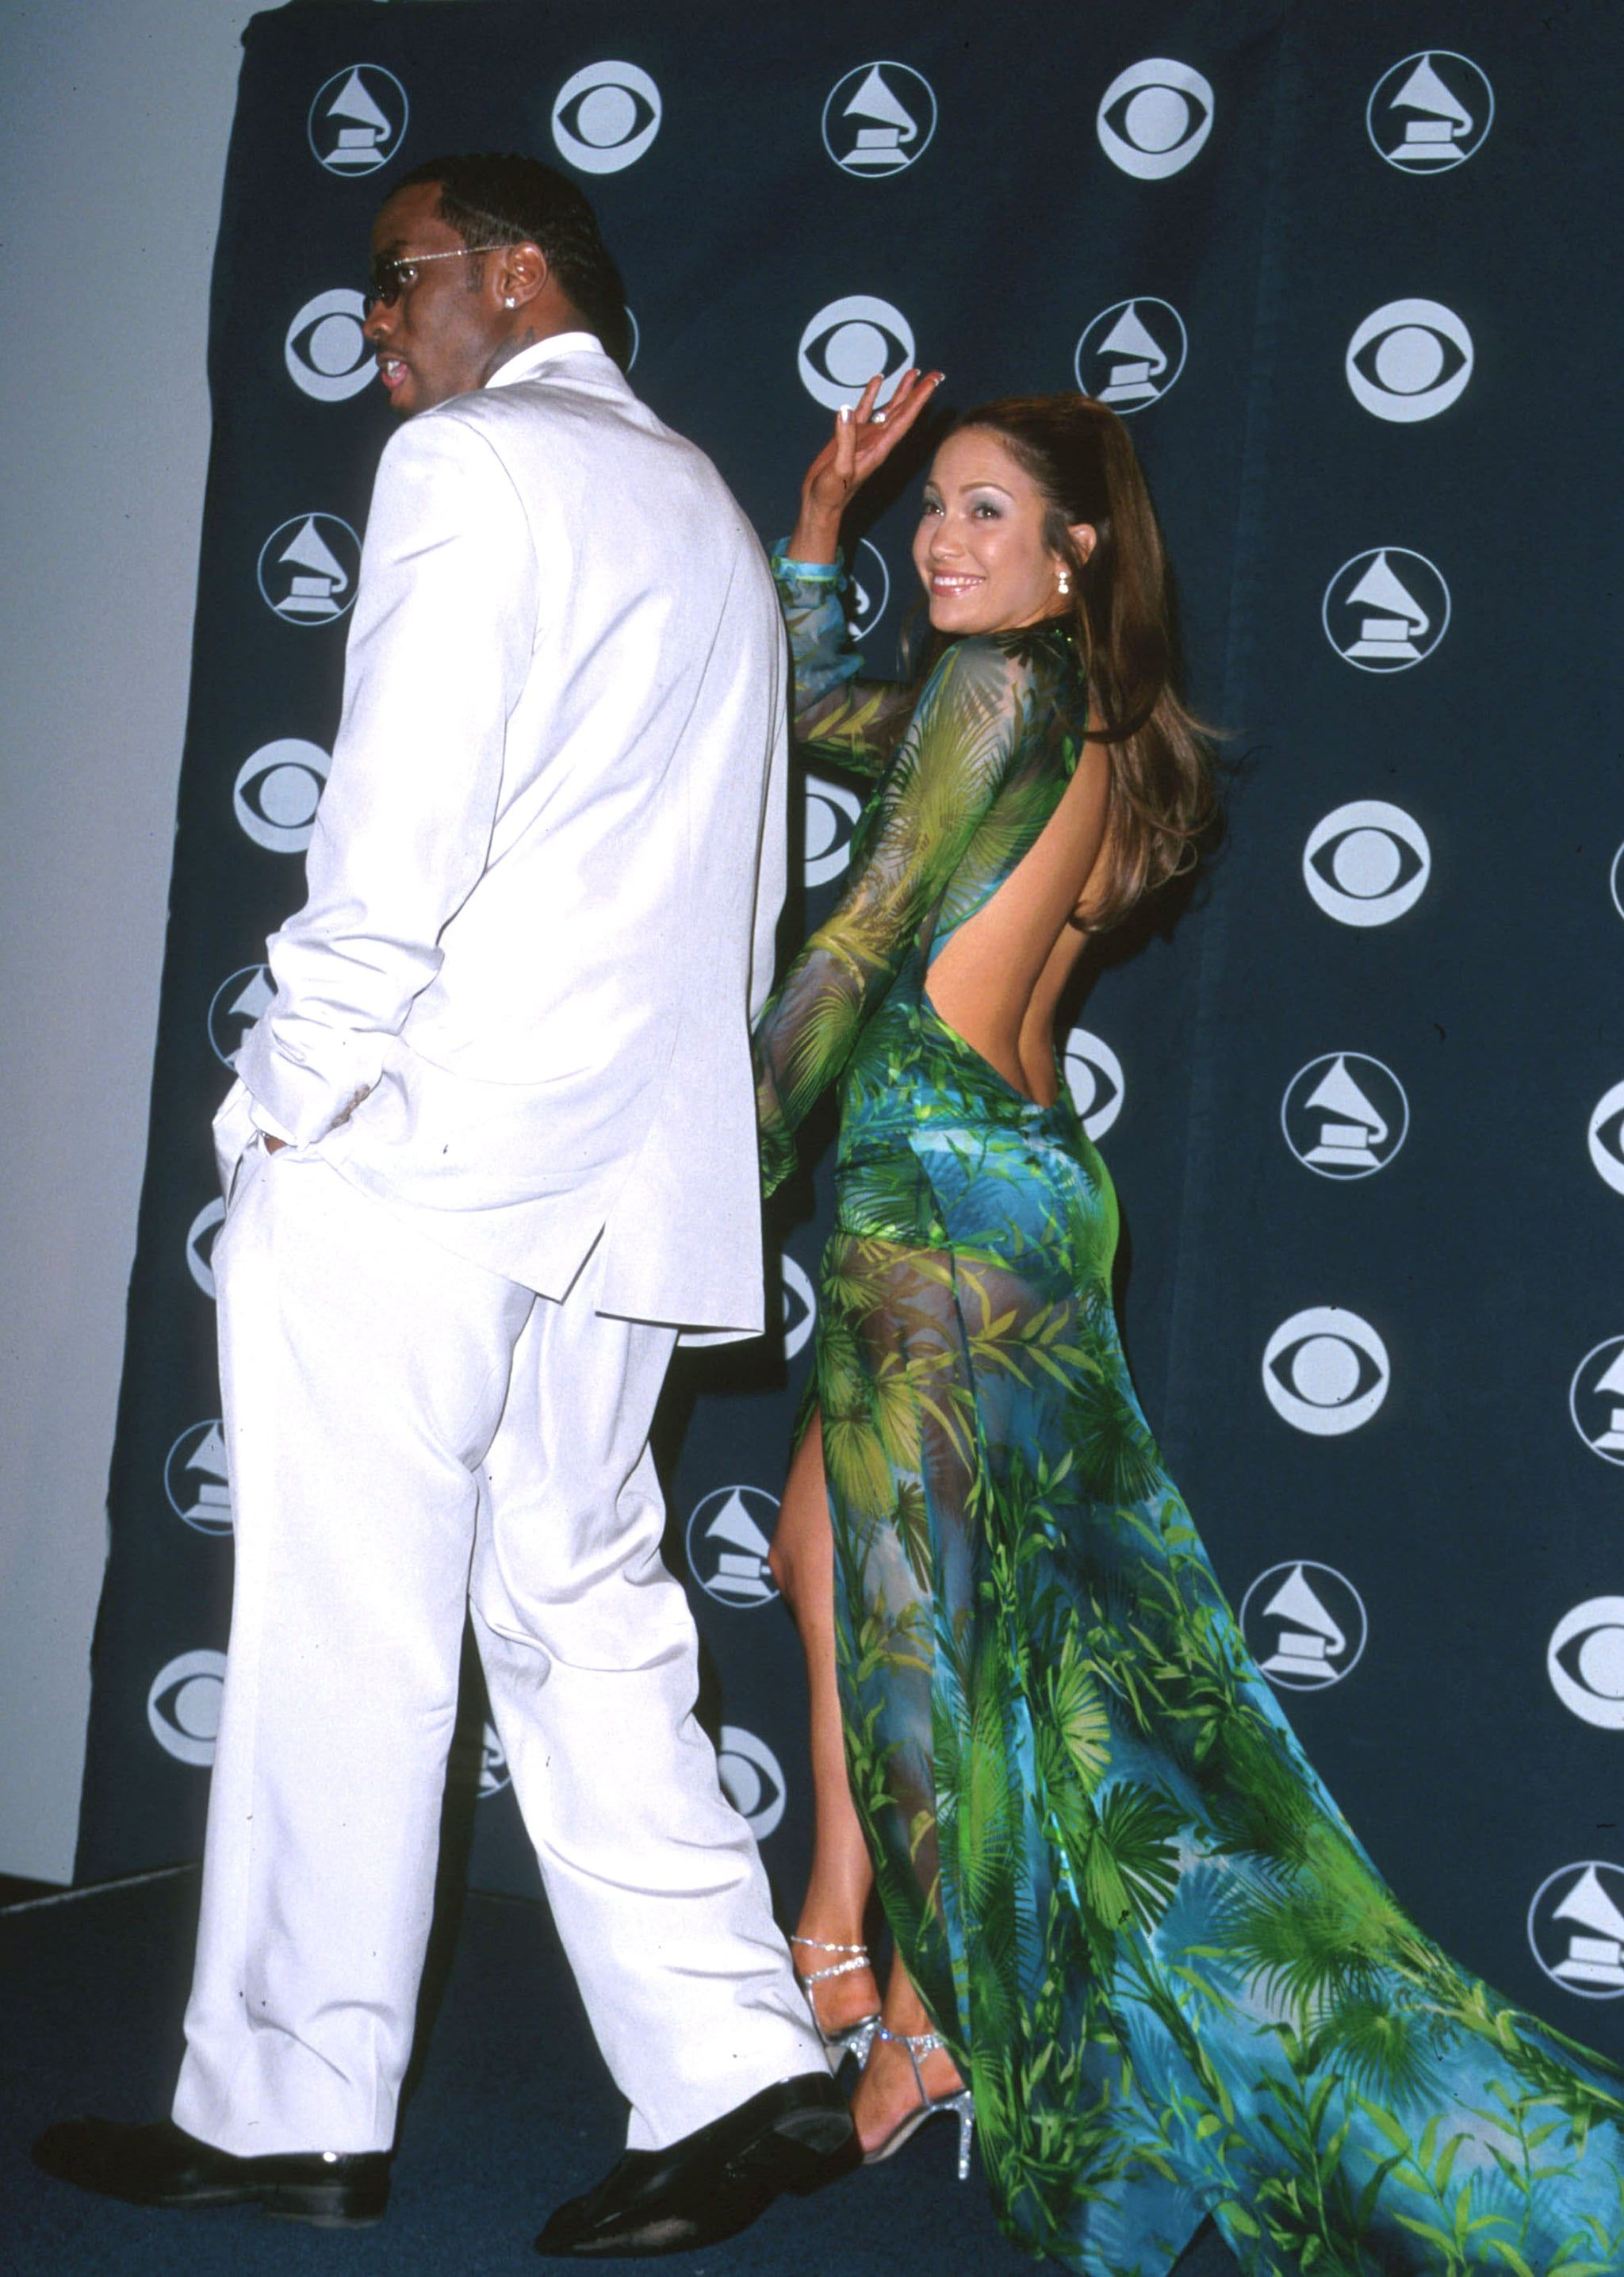 Jennifer Lopez Wasn T The First One To Wear That Green Versace Dress On The Red Carpet In 2021 Jlo Green Dress Grammy Dresses Jennifer Lopez Versace Dress [ 2871 x 2048 Pixel ]